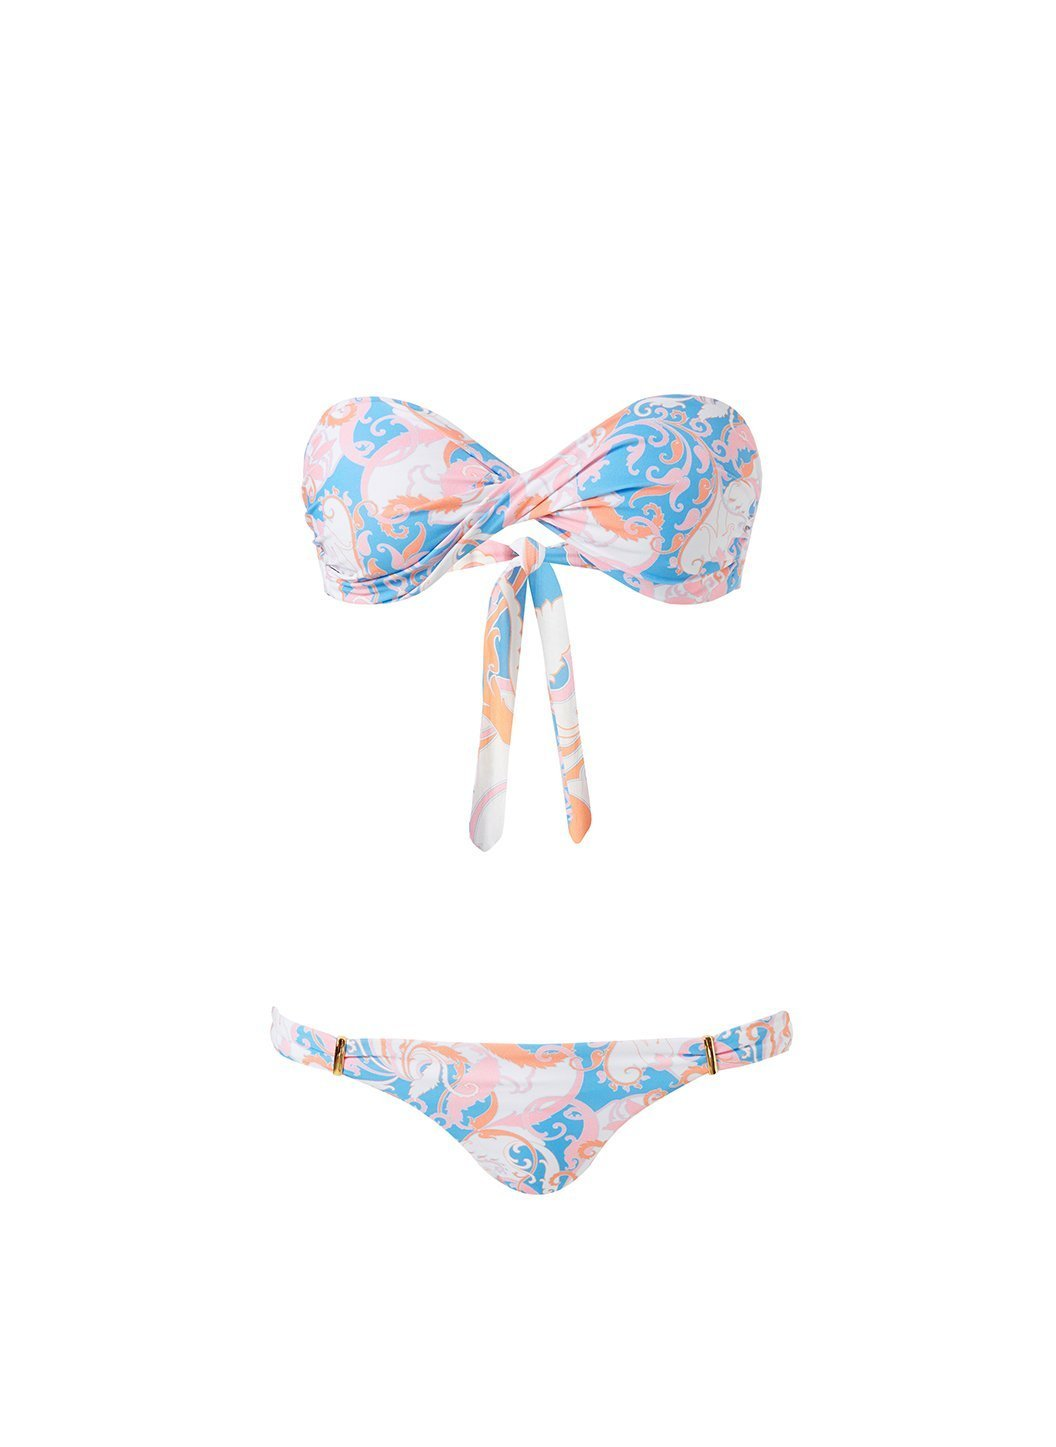 Martinique Baroque Blush Bikini Cutout